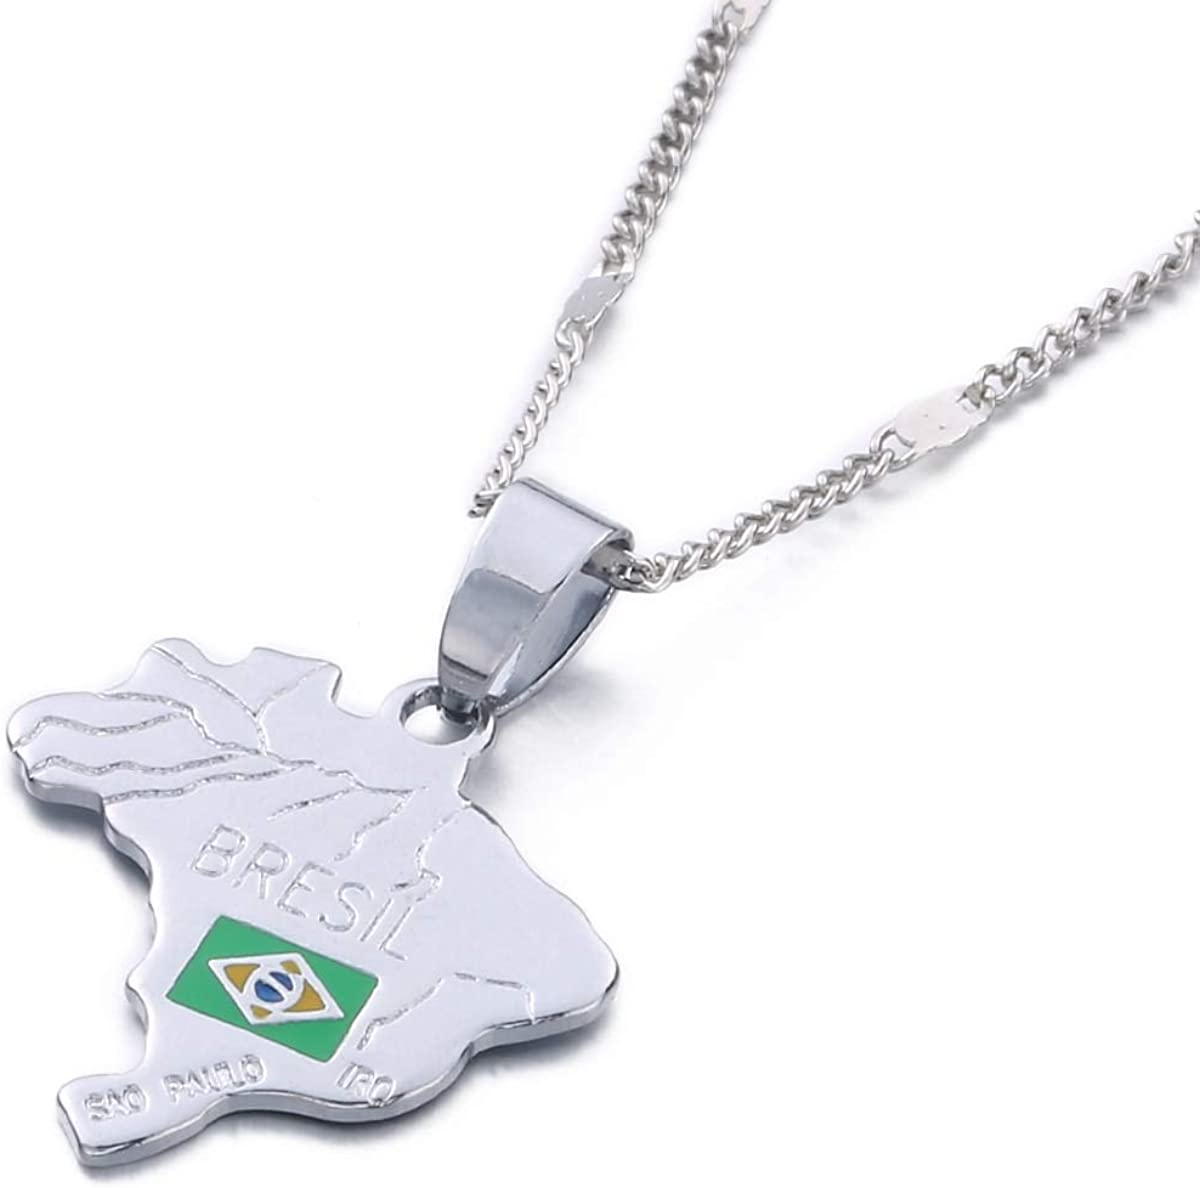 The Federative Republic of Brazil Map National Flag Pendant Necklaces Silver Color Map Chain Jewelry